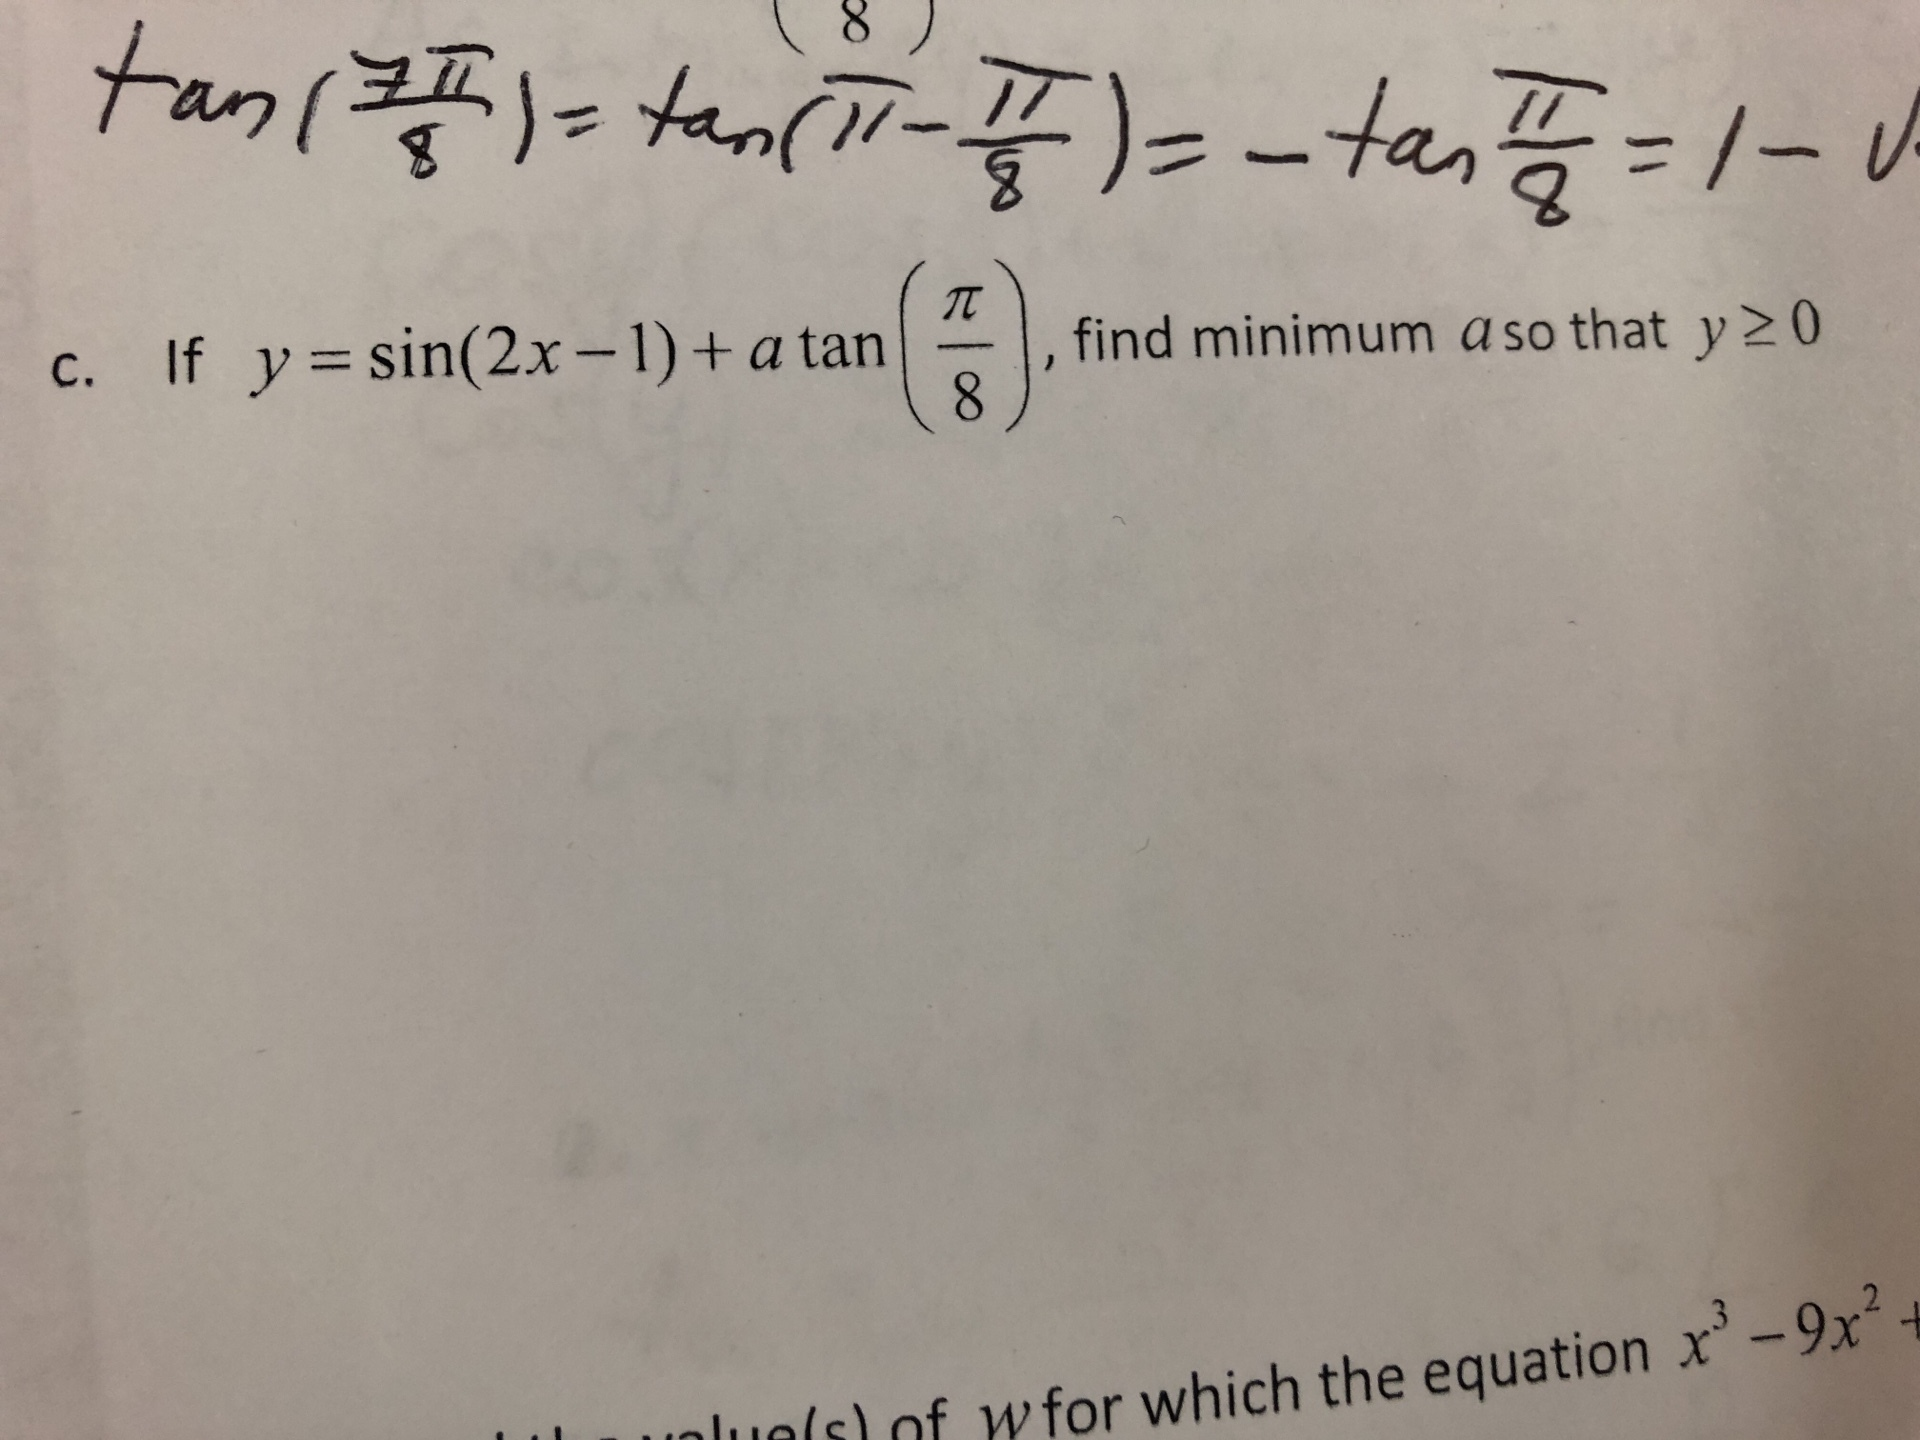 guys I really need help with part c) I literally have no